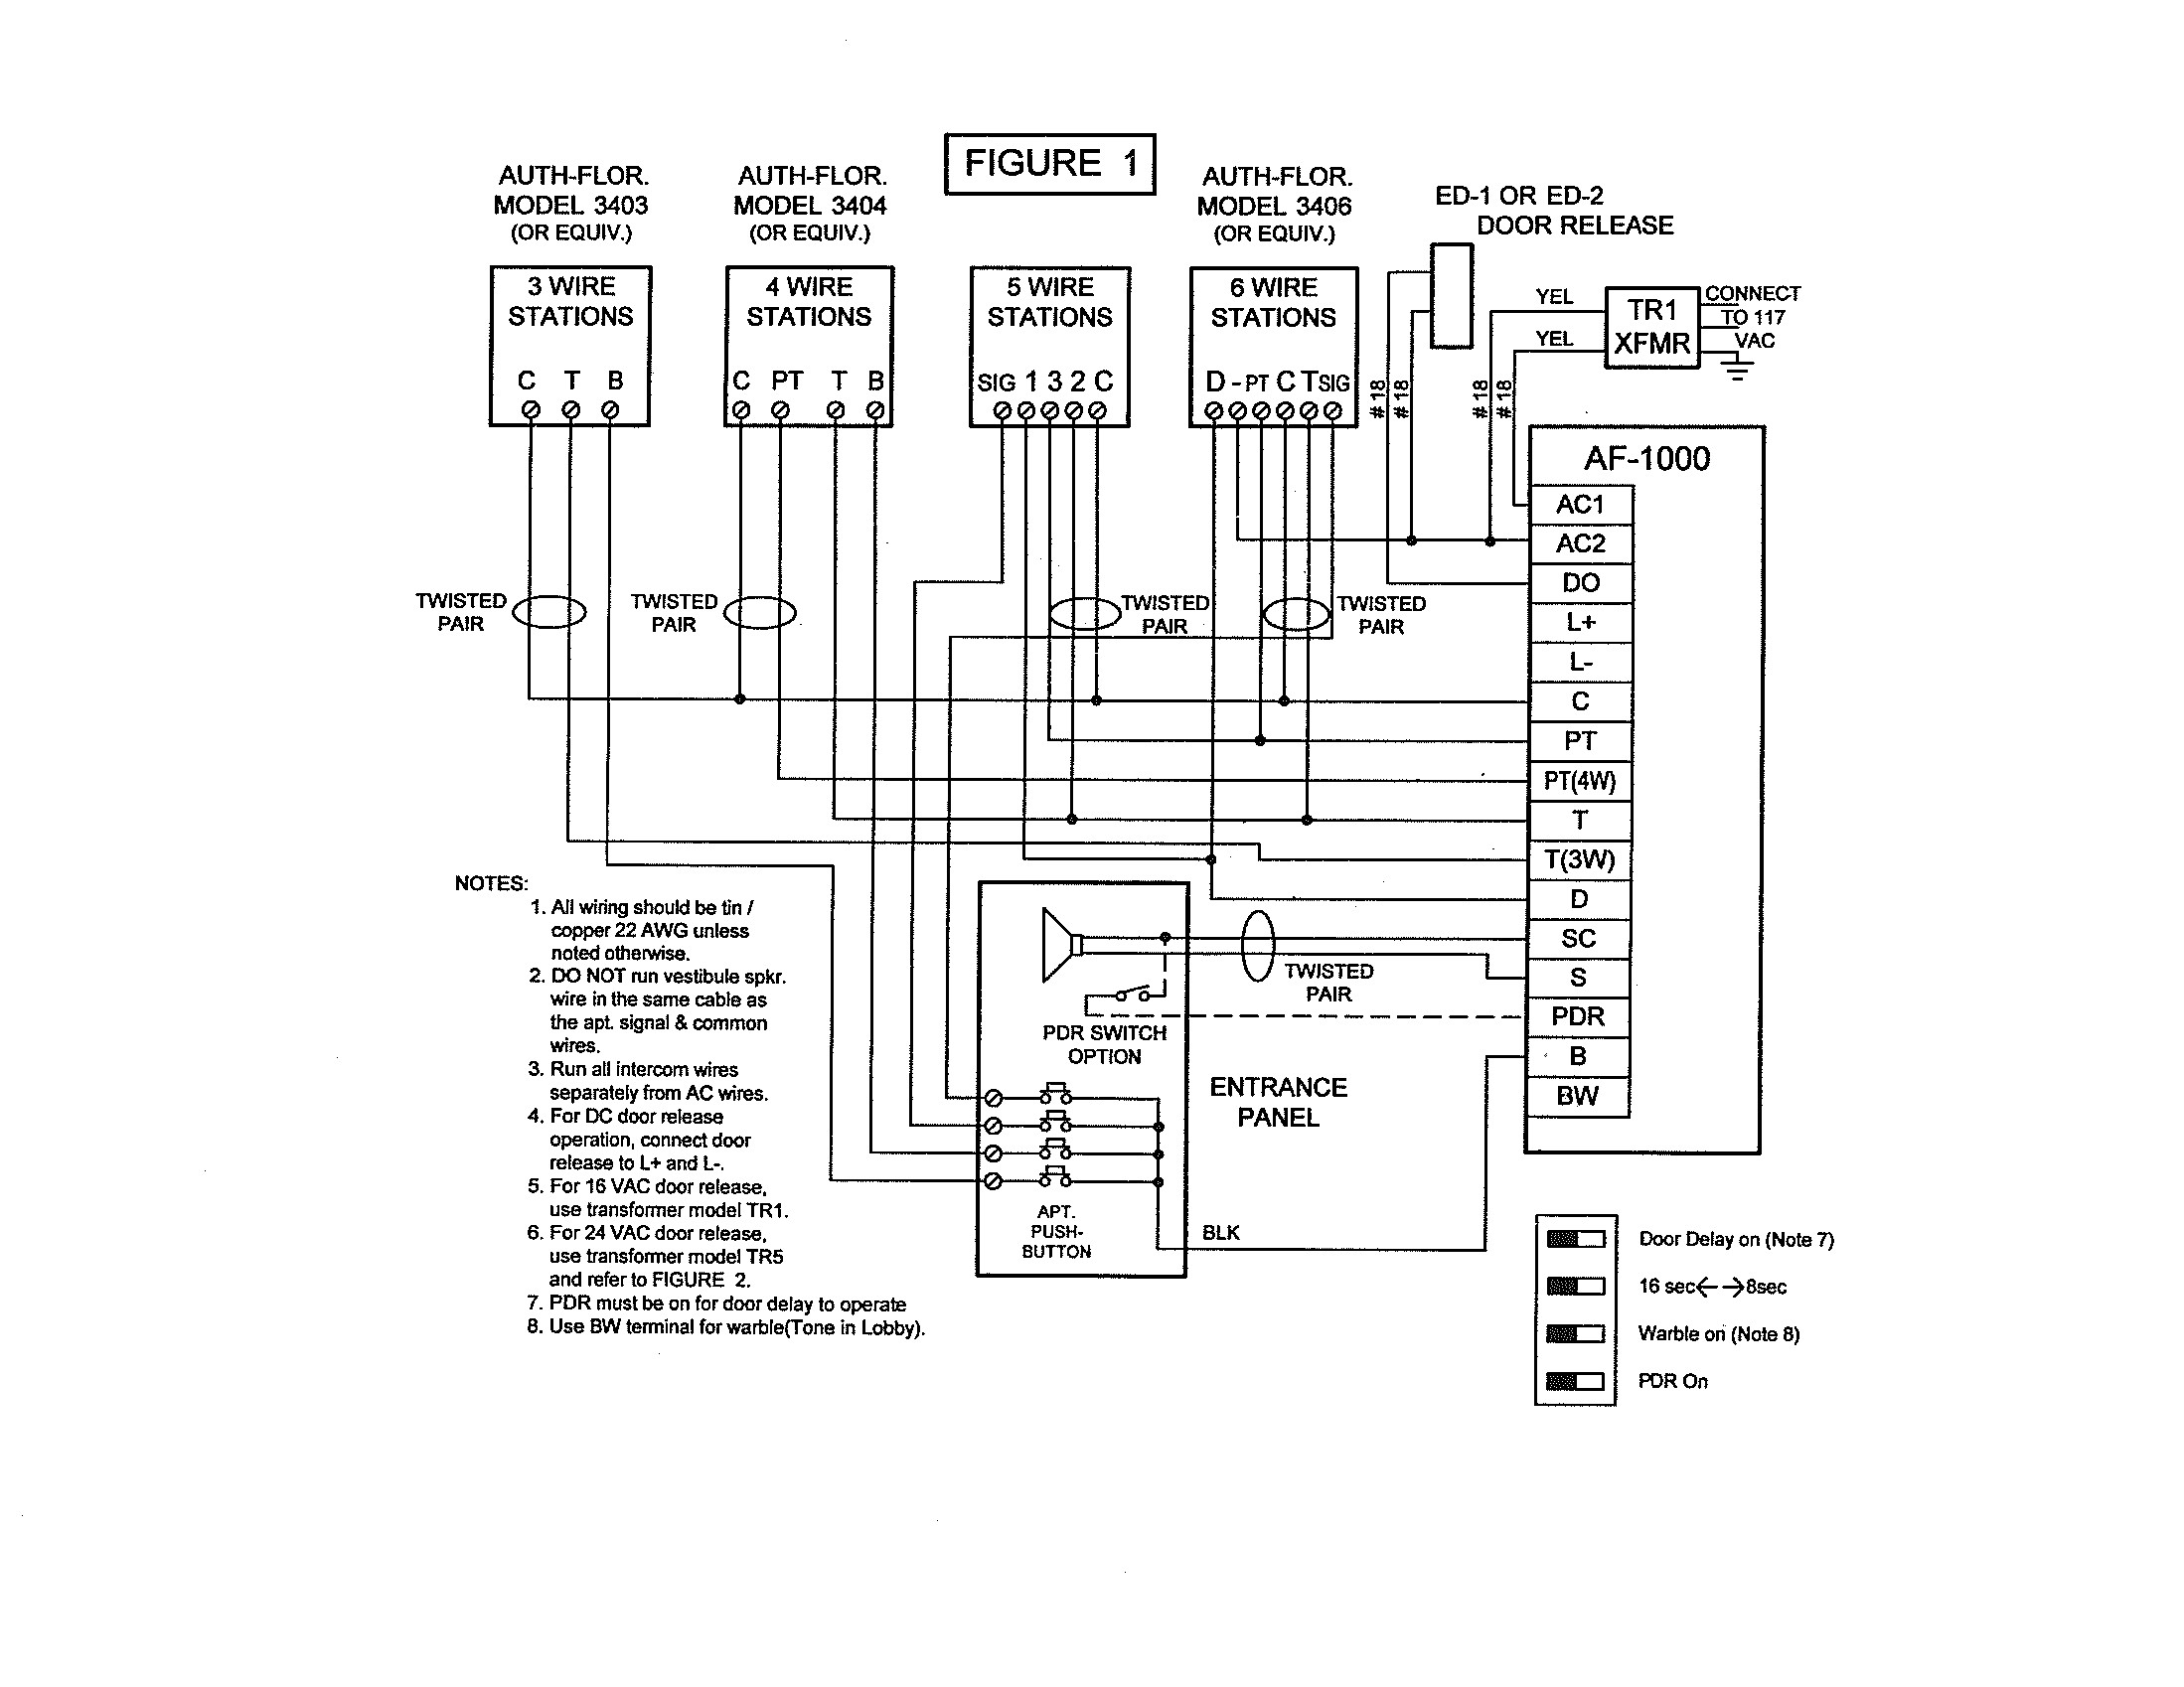 call station wiring diagram get free image about wiring diagram